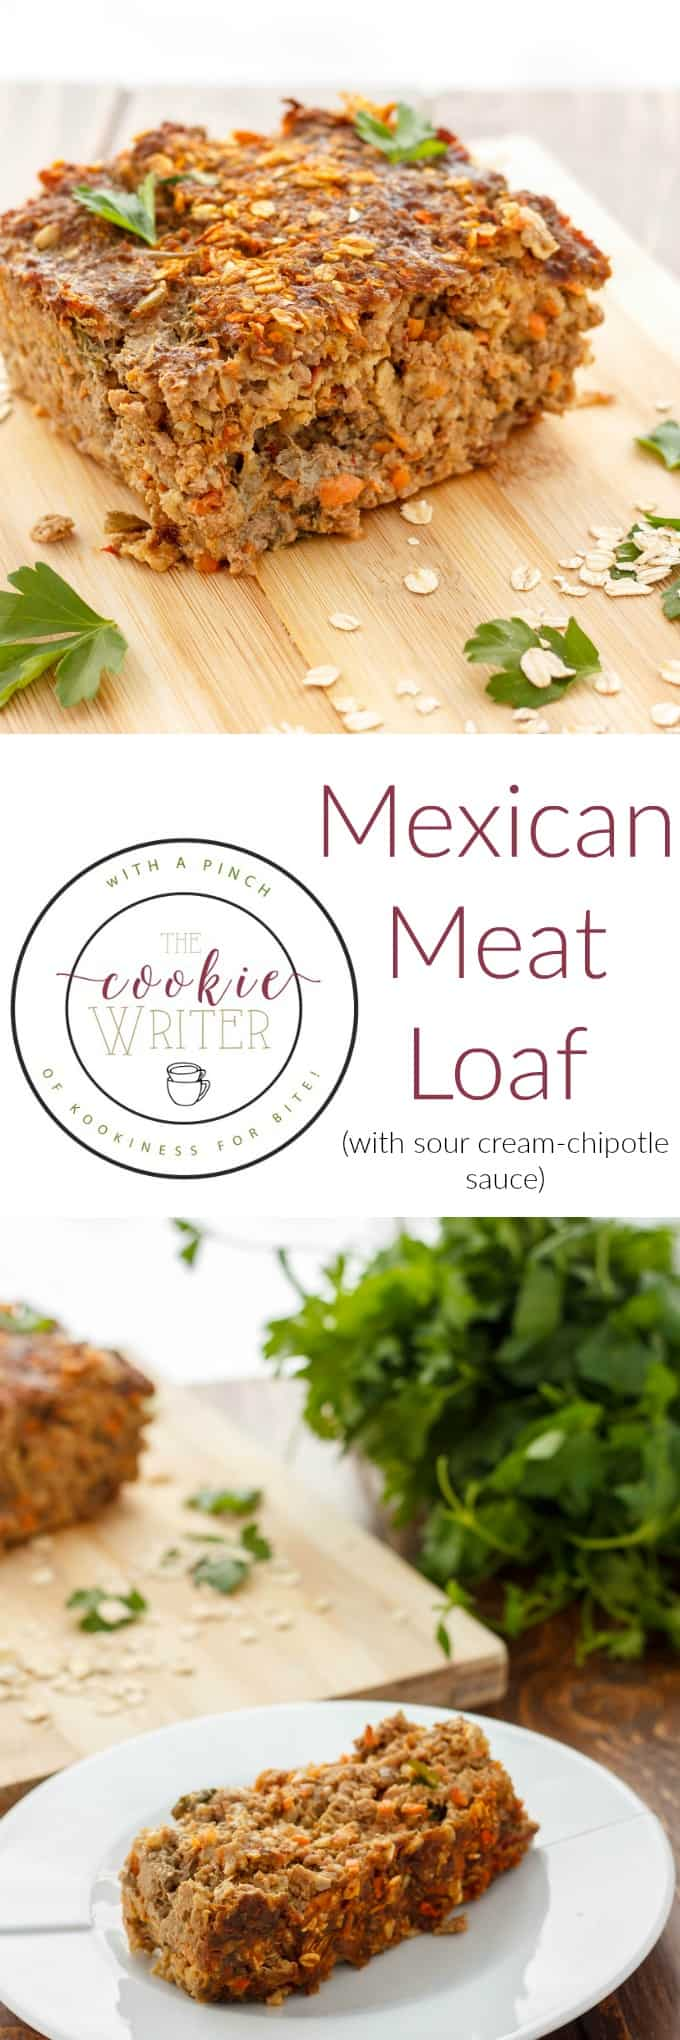 Mexican Meat Loaf with Sour Cream-Chipotle Sauce) #dinner